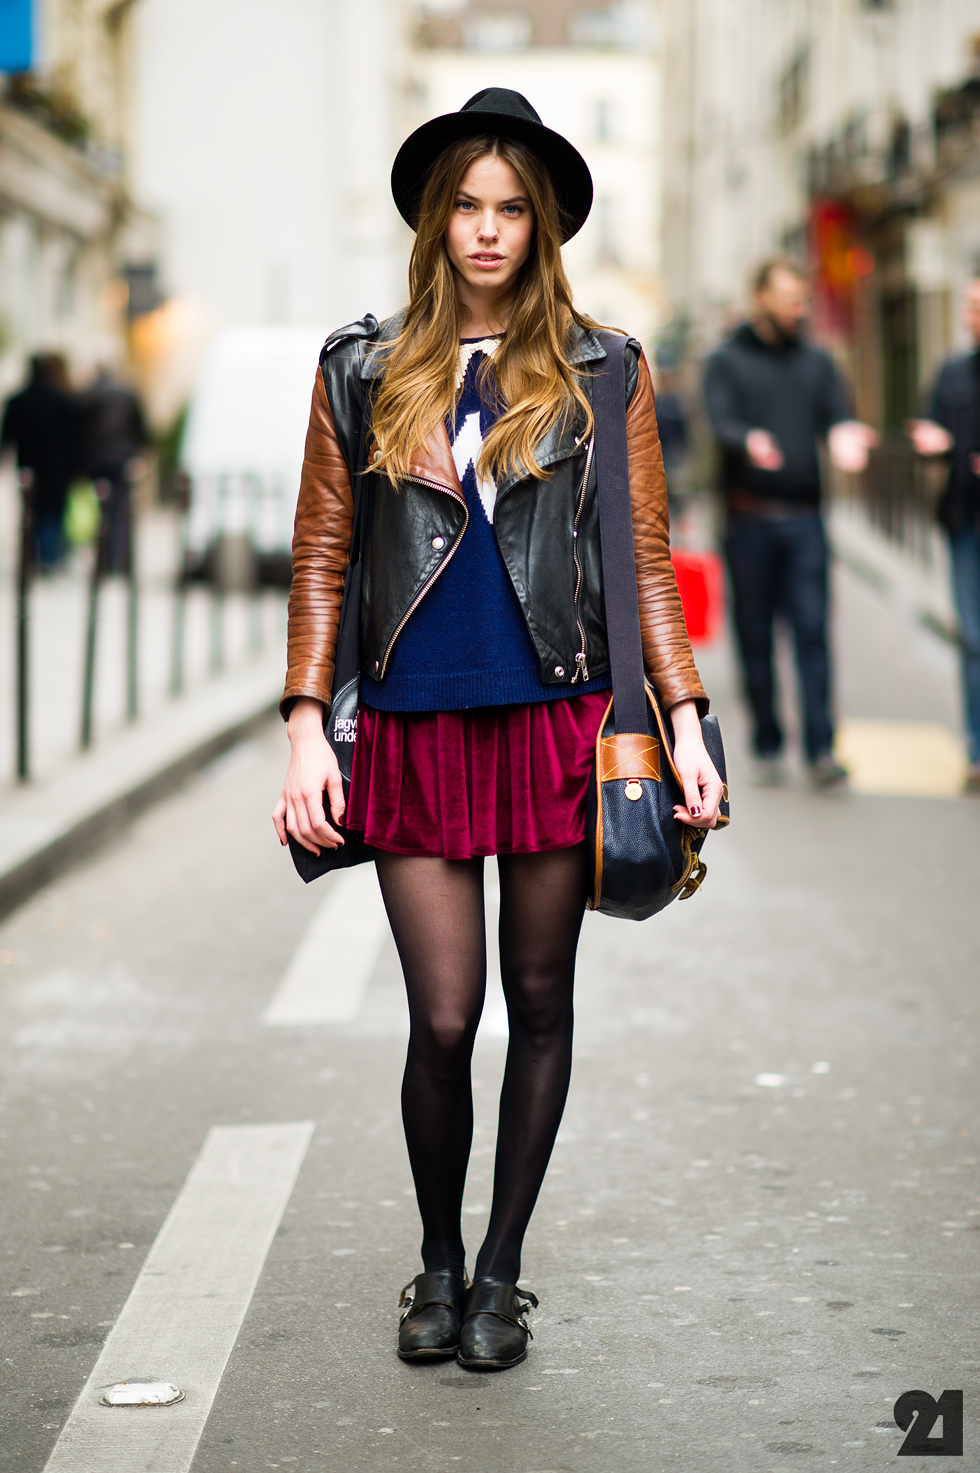 Take A Break Street Style Of The Week